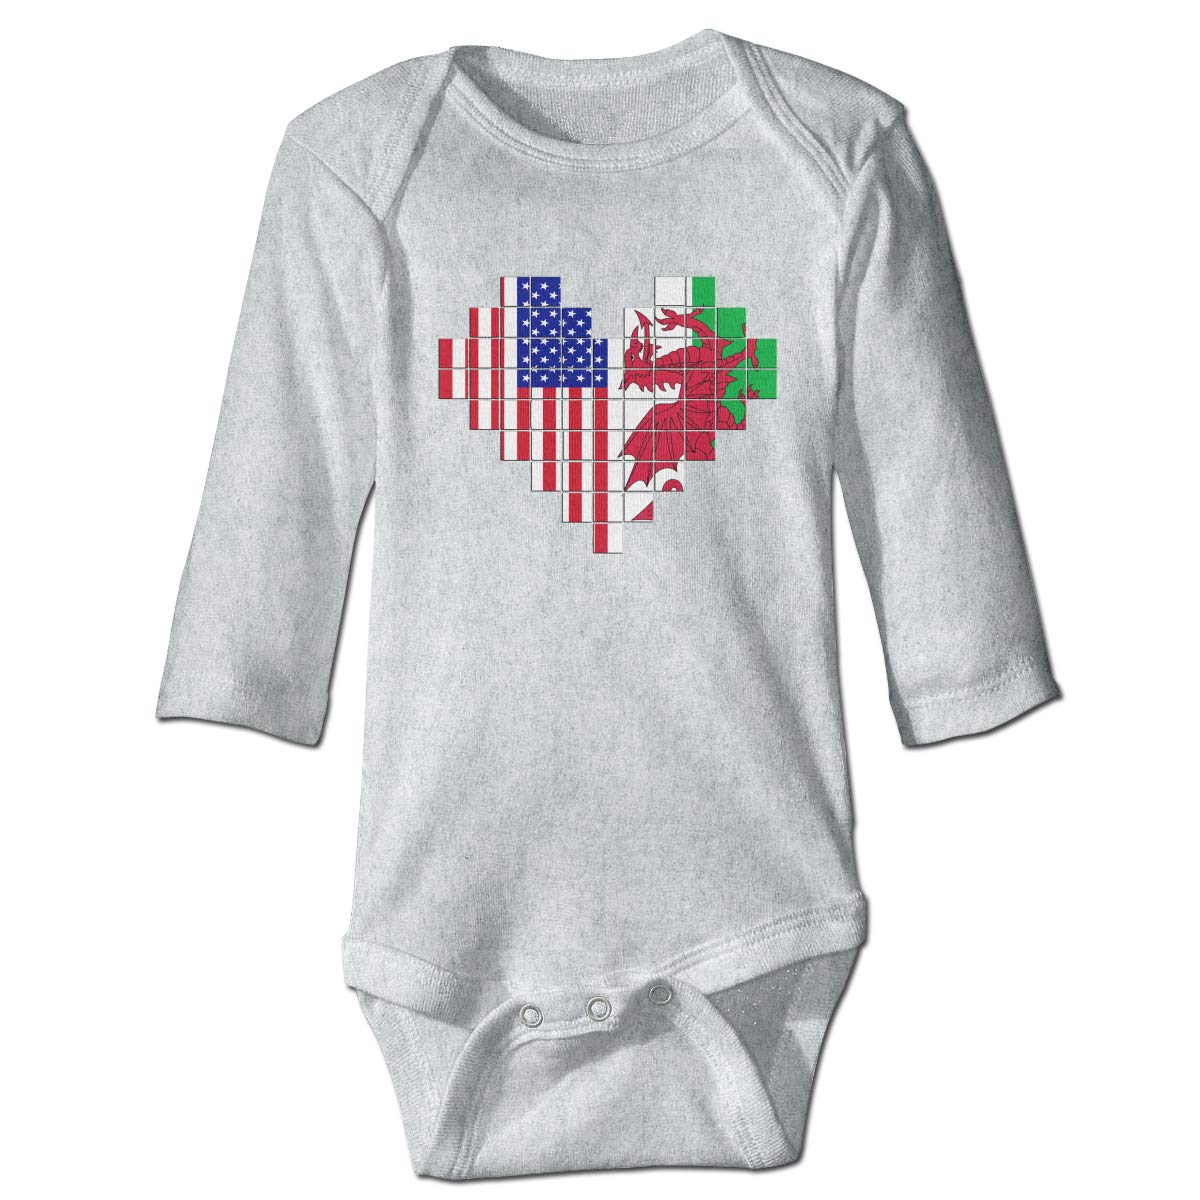 A14UBP Baby Infant Toddler Long Sleeve Climb Jumpsuit American Flag Welsh Flag Puzzle Heart Playsuit Outfit Clothes